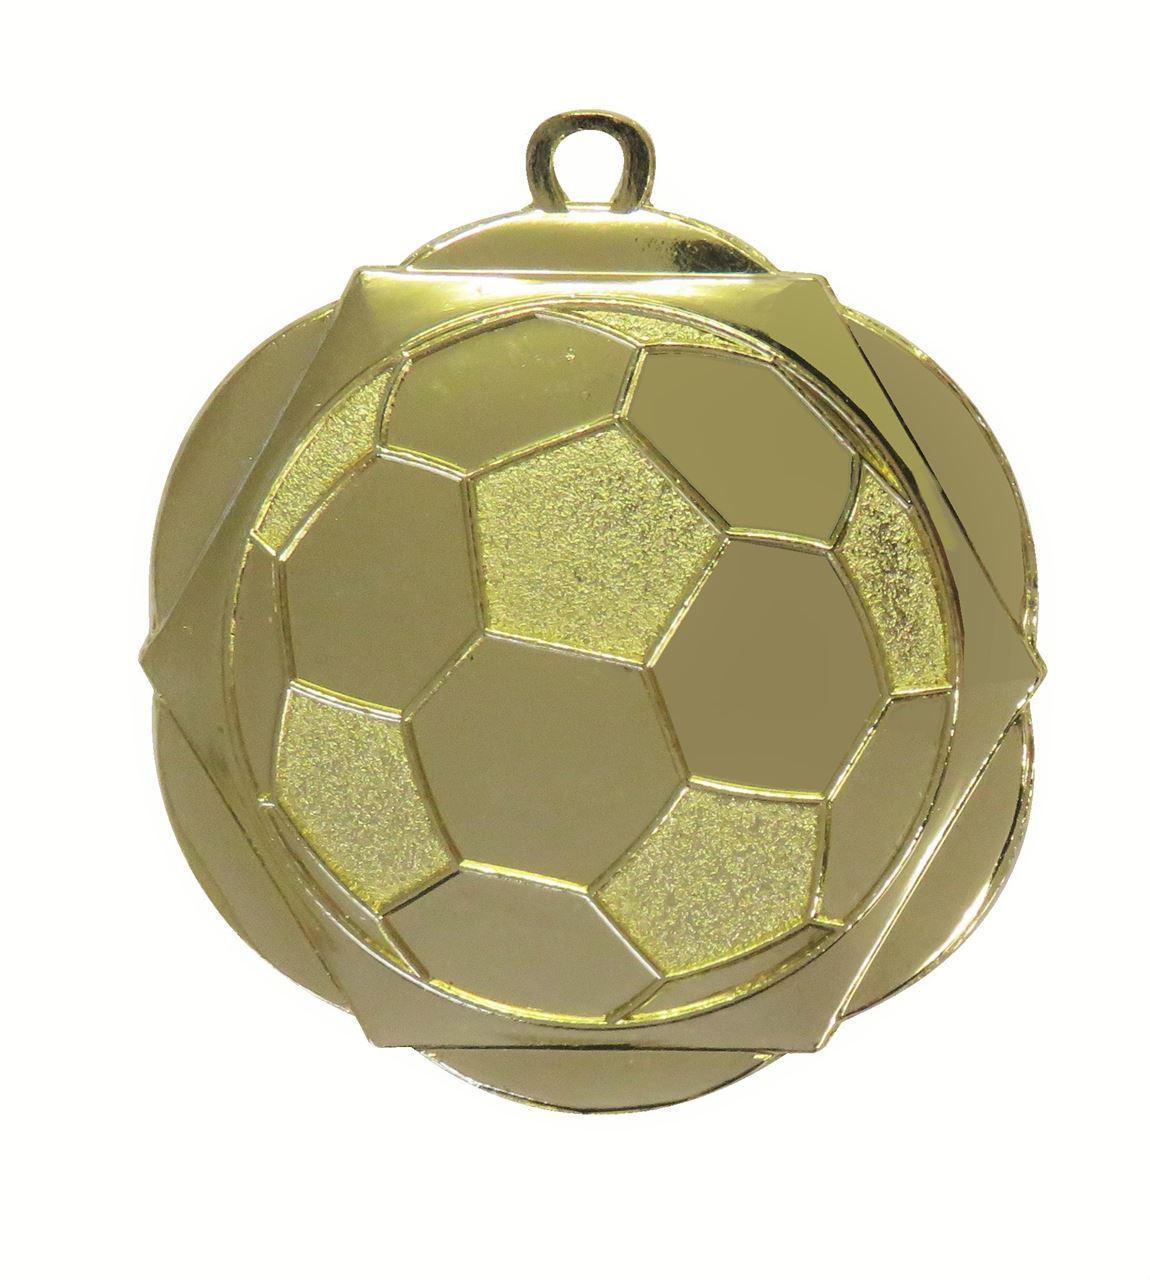 Gold English Rose Football Medal (size: 50mm) - D5